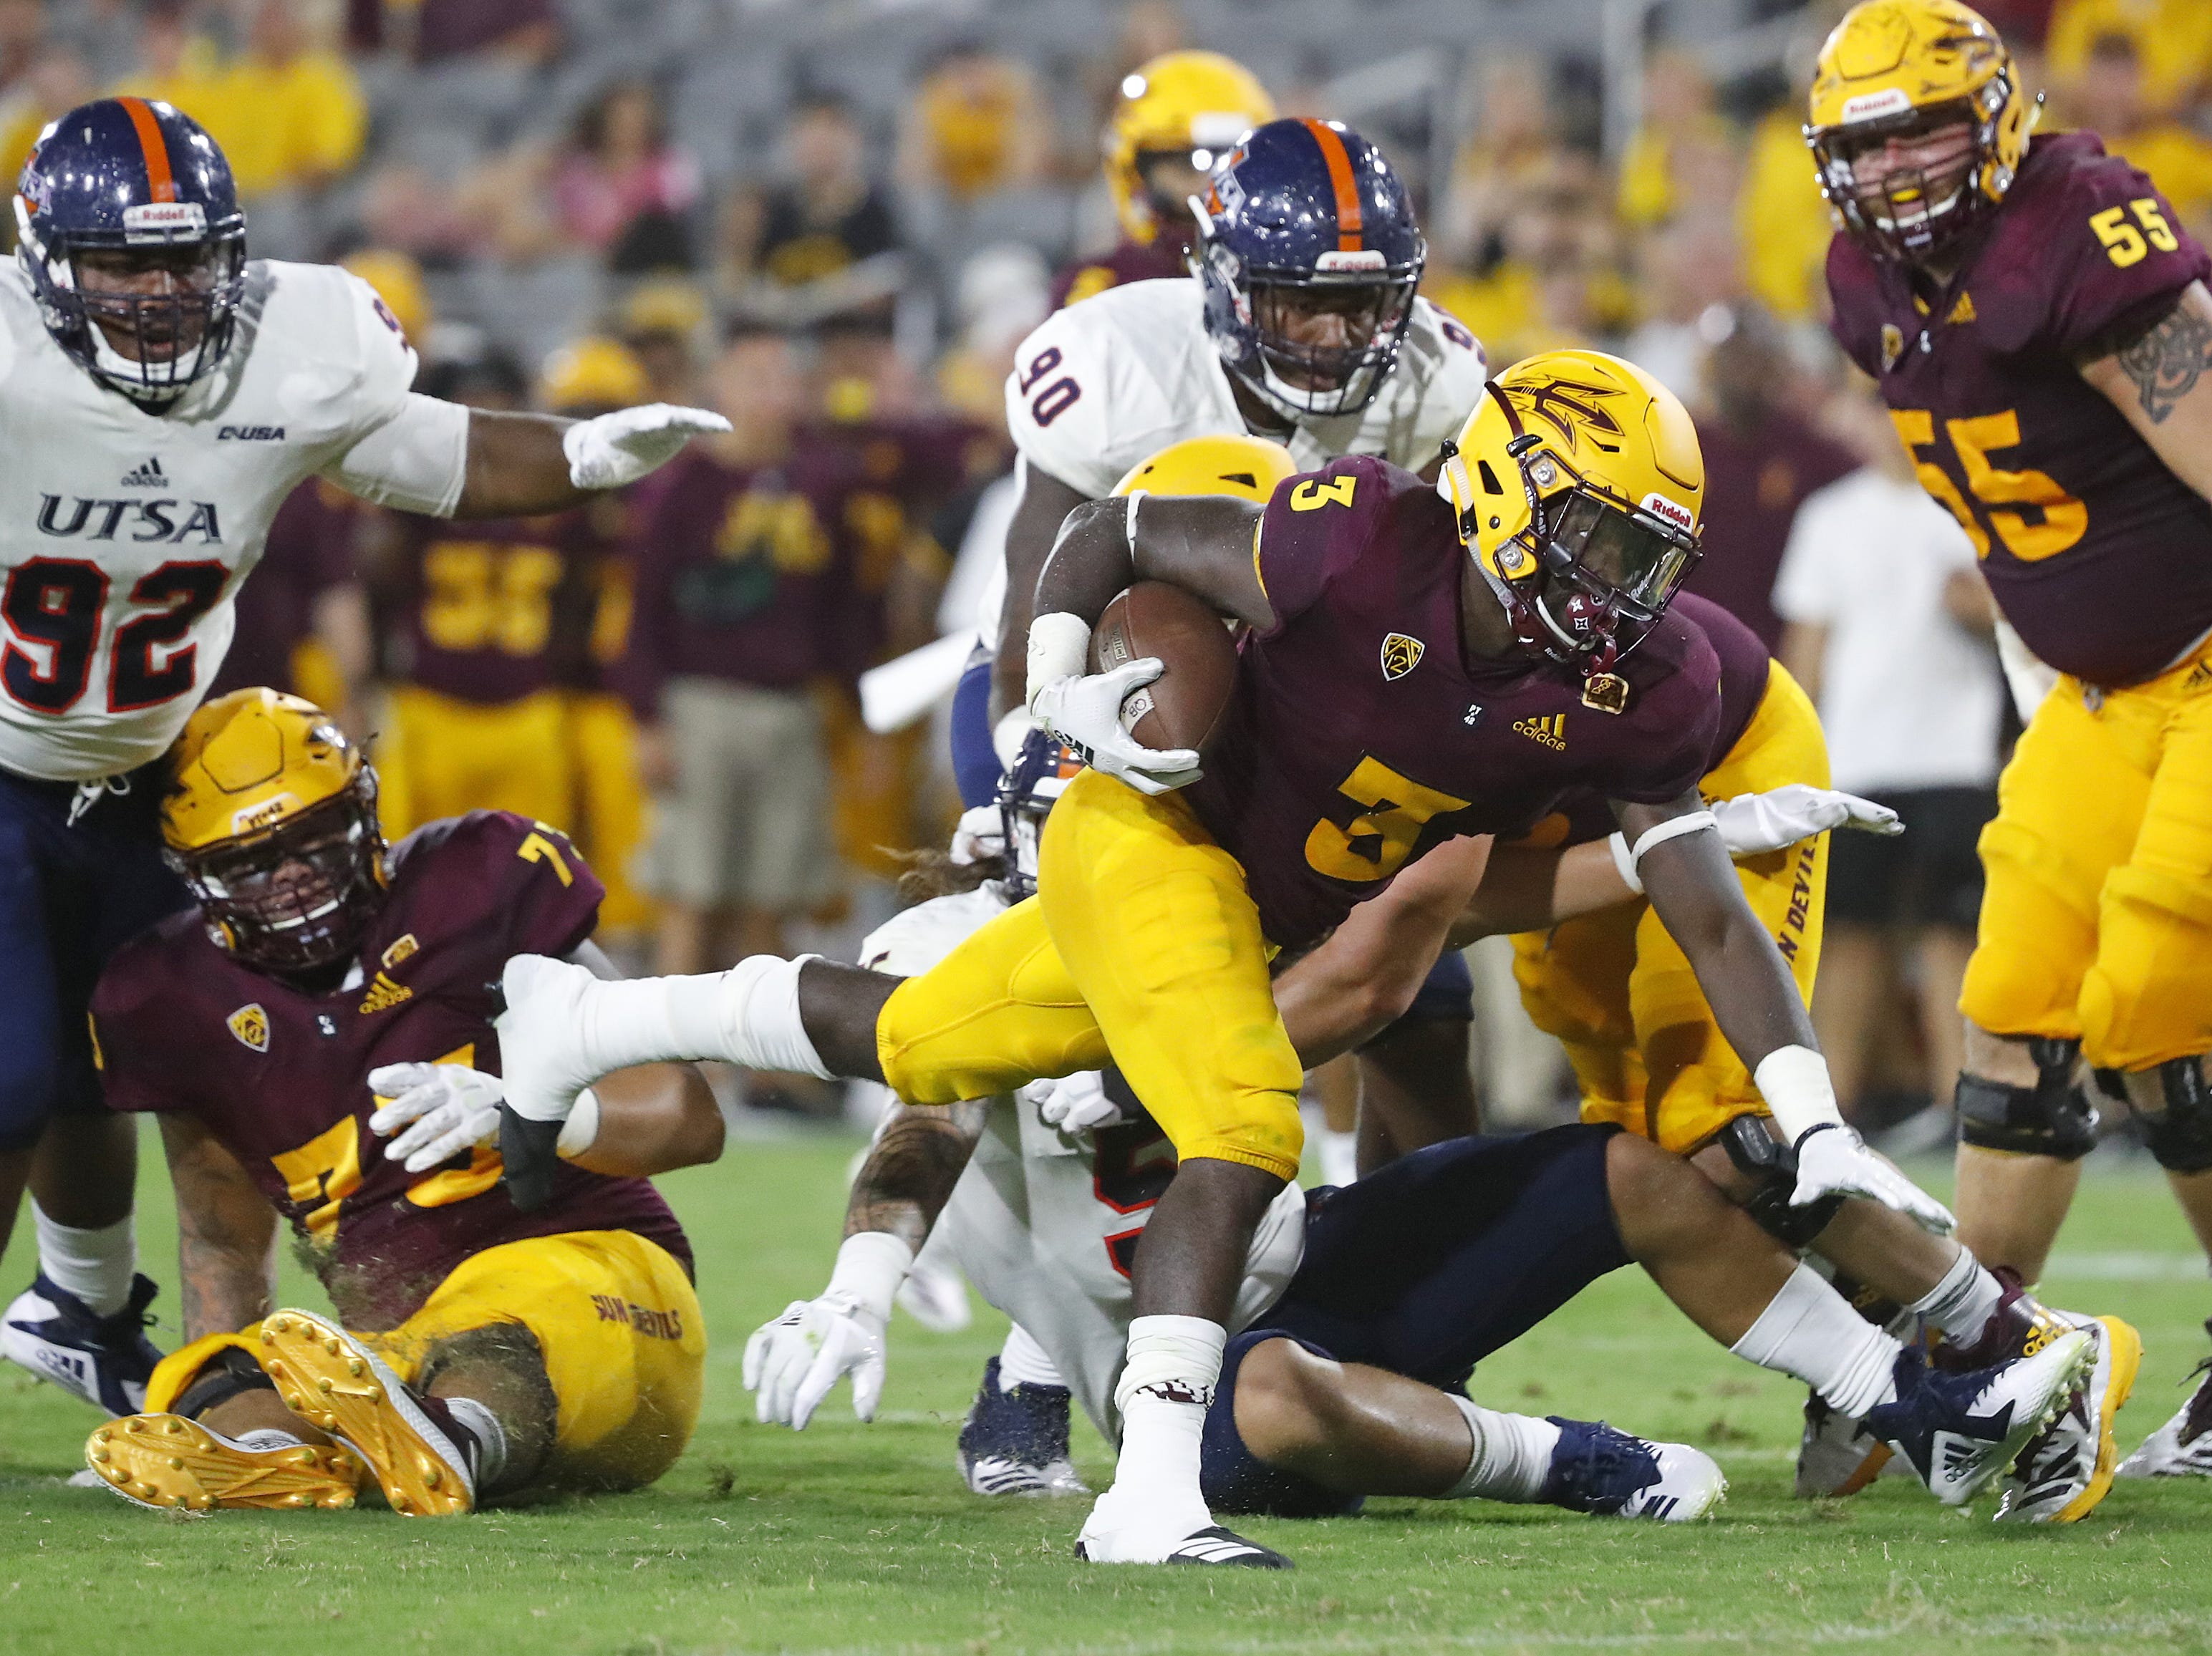 Arizona State Sun Devils running back Eno Benjamin (3) runs for a first done during the second half at Sun Devil Stadium in Tempe, Ariz. on Sept. 1, 2018.